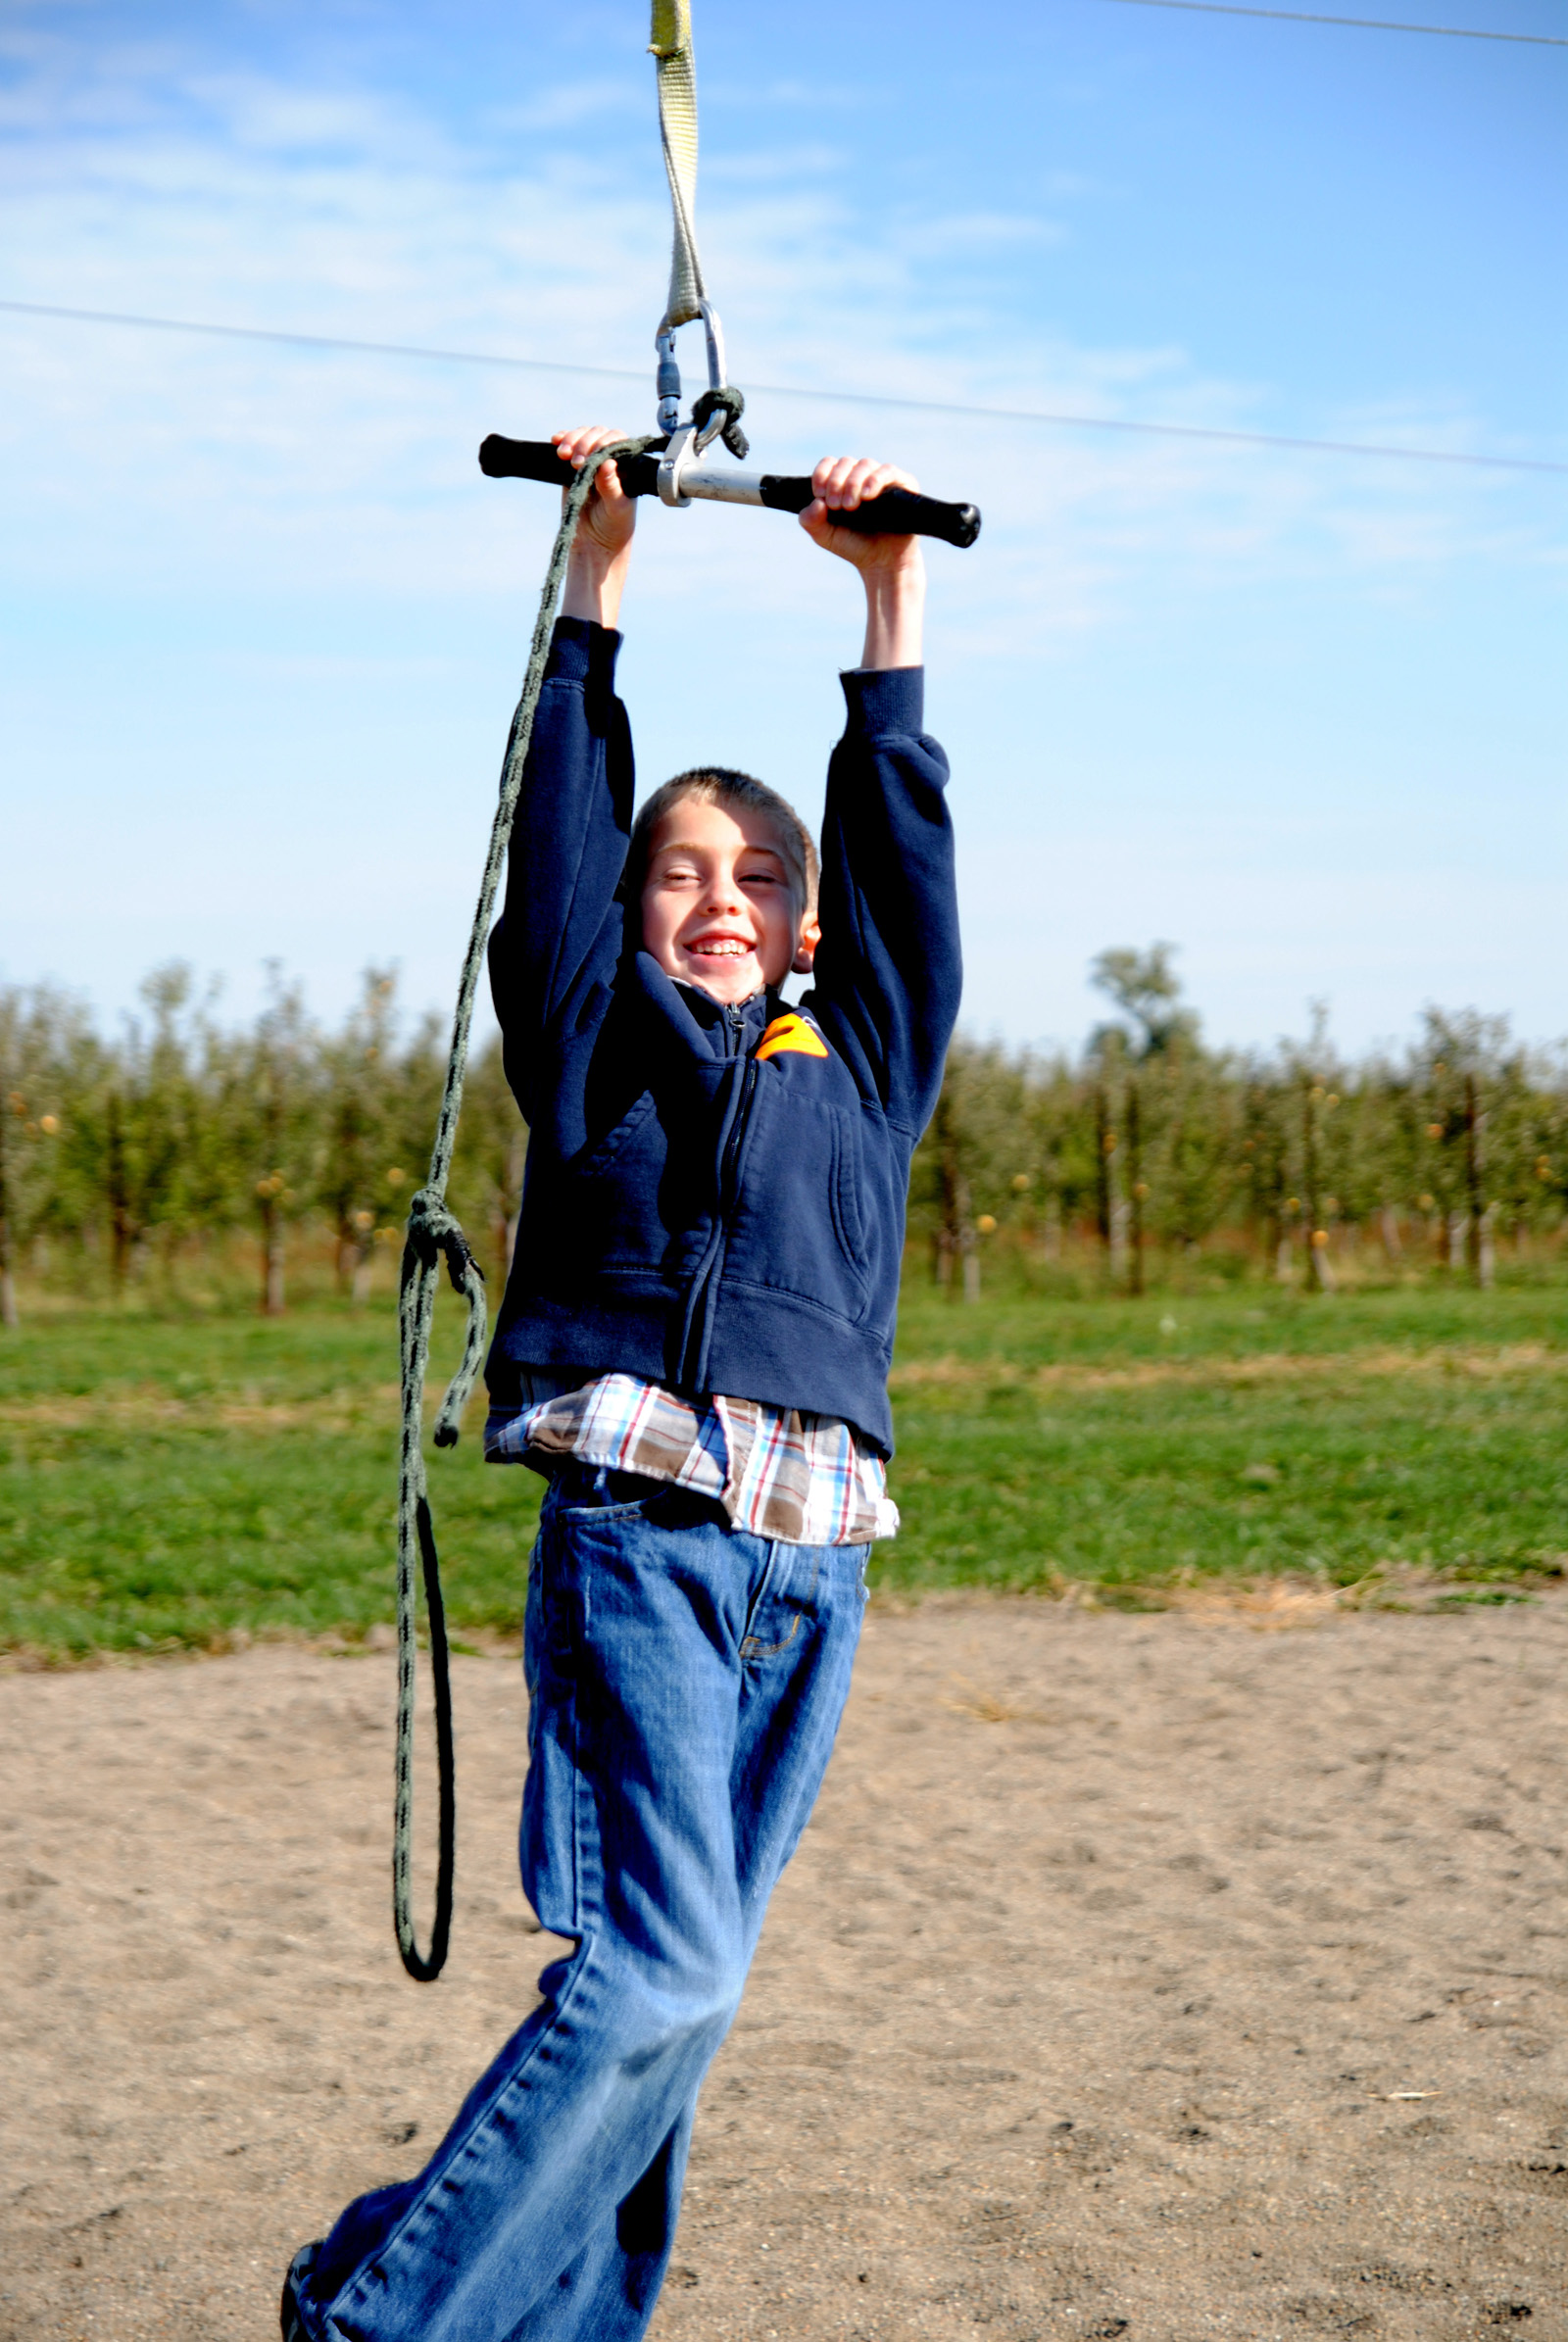 Zip line at Pumpkin Patch at Orchard and Company|Sharon the Moments blog